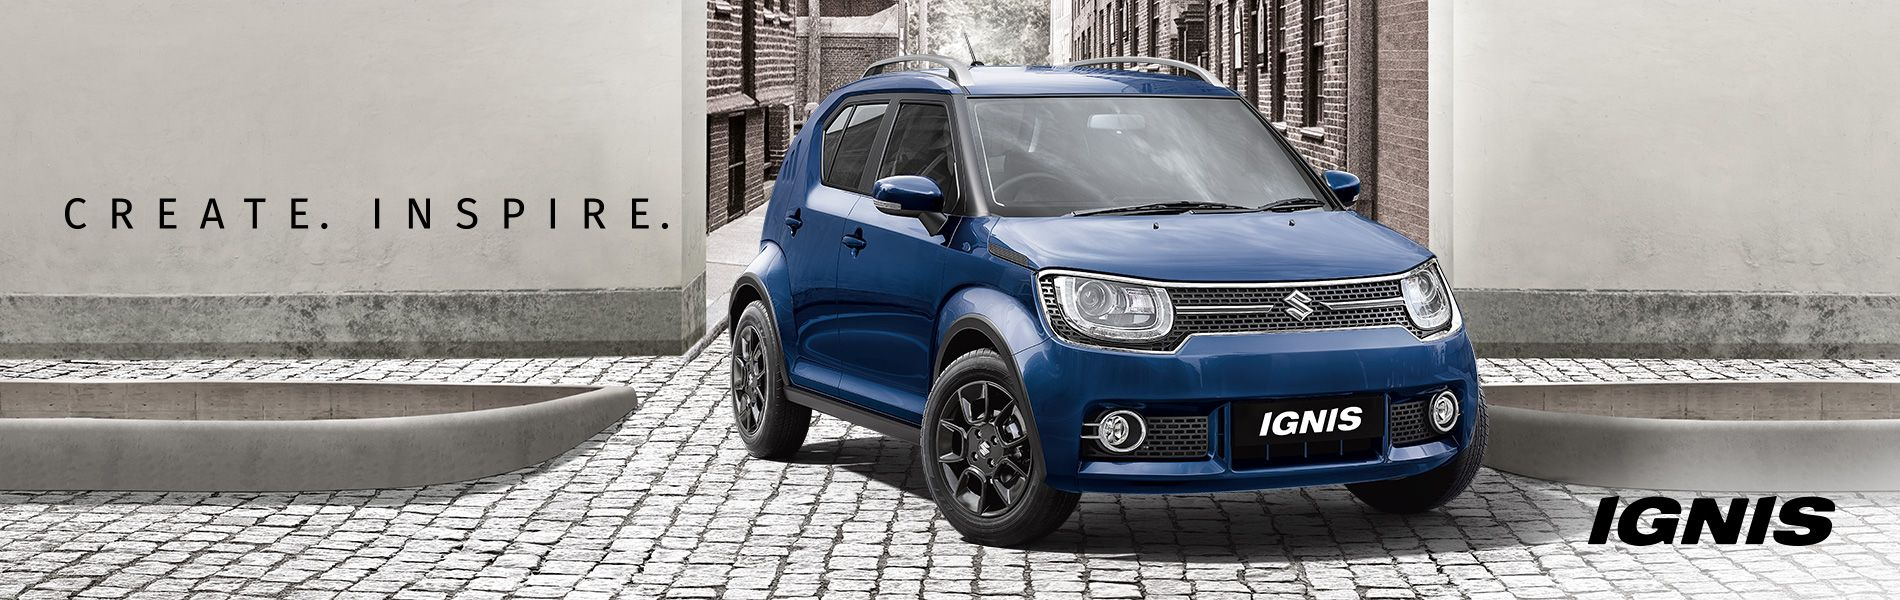 Maruti Suzuki Ignis Is One Of The Most Valuable Car In The Market